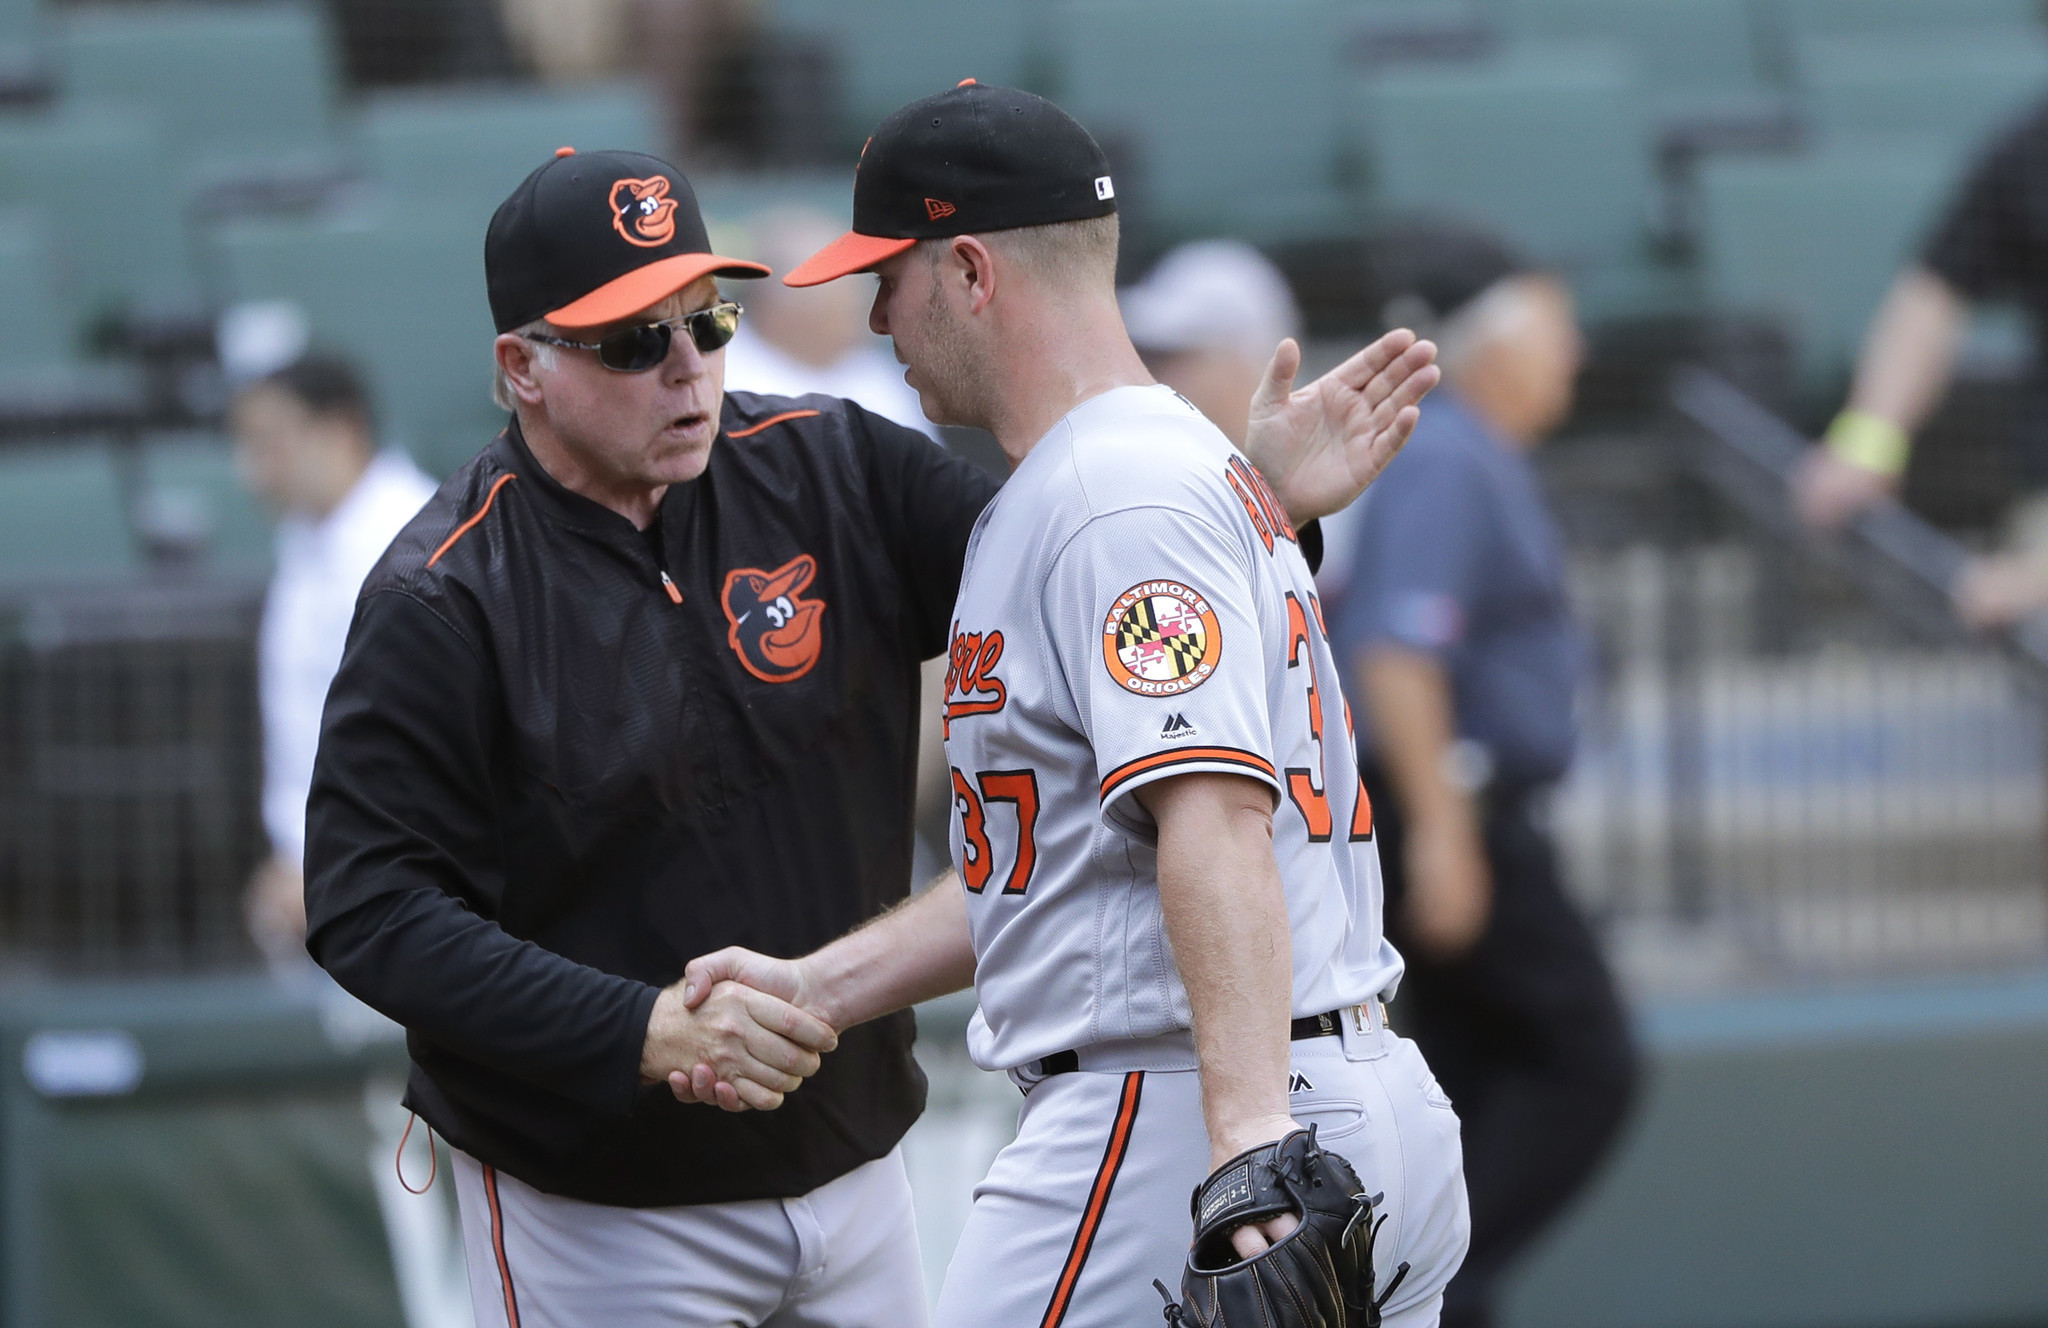 Bal-orioles-rewind-looking-back-at-thursday-s-9-3-win-over-the-white-sox-20180524